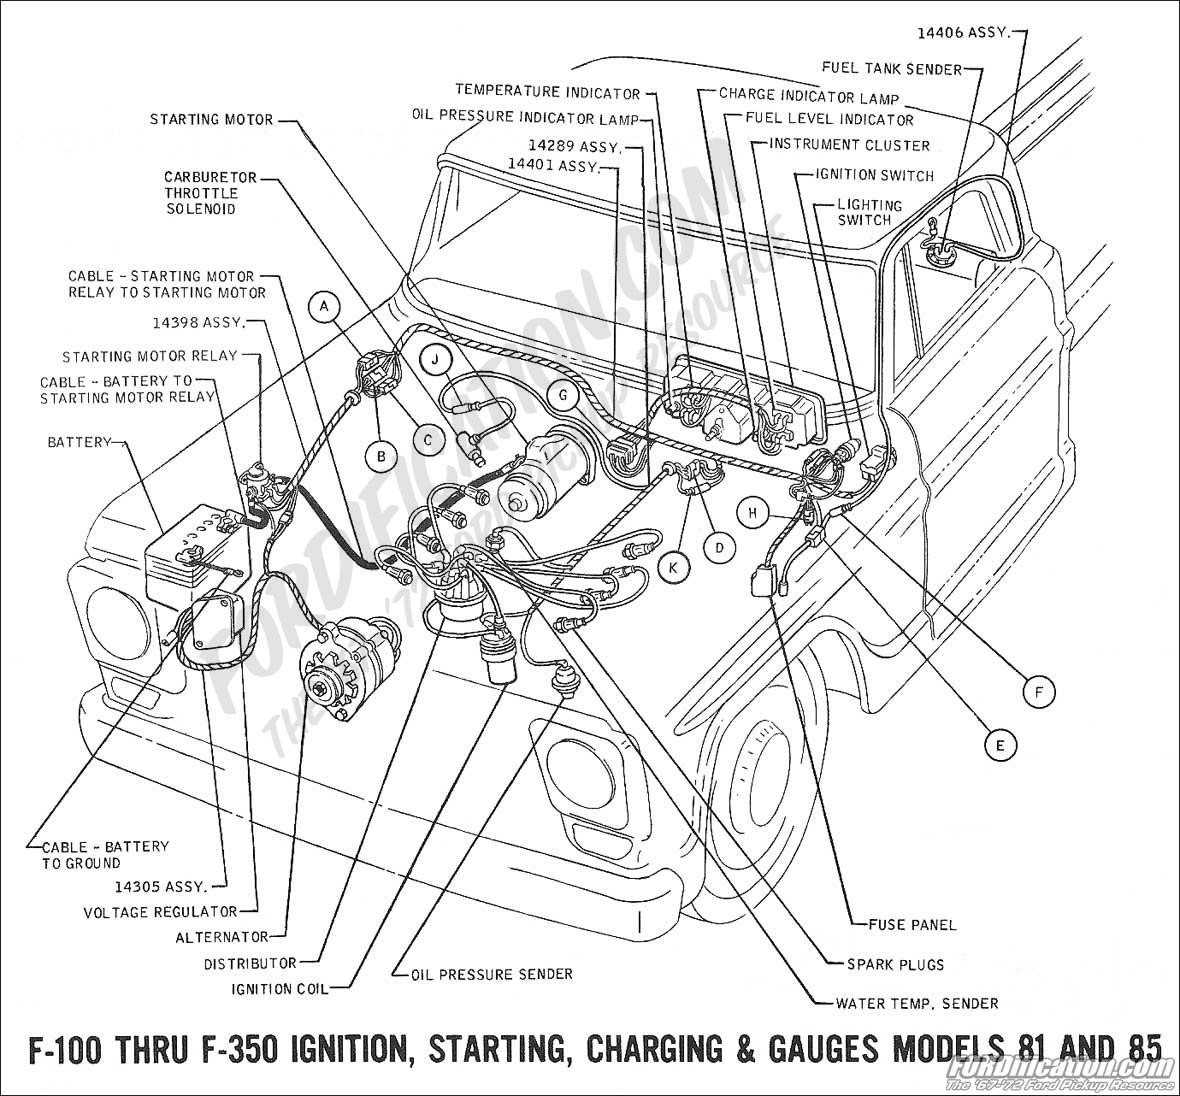 wiring 1969charging ford truck technical drawings and schematics section h wiring ford ignition wiring diagram at nearapp.co